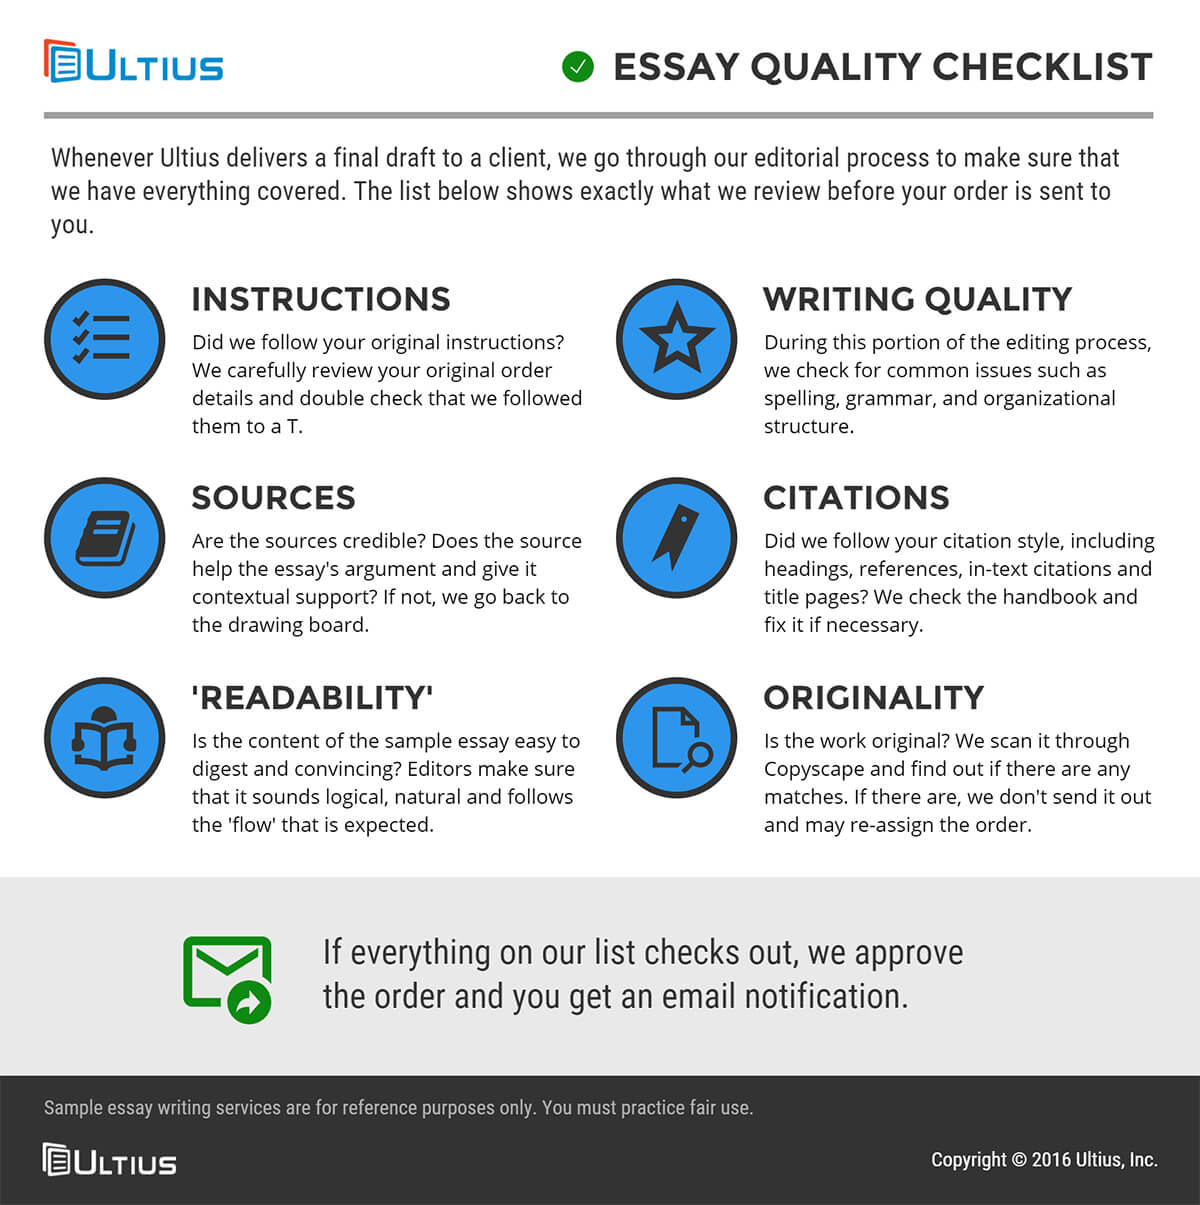 Science Fiction Essay Topics Quality Checklist When You Buy An Essay From Ultius Graduating From High School Essay also Essay Paper Writing Services Buy Essay  Essay Writing Services Online  Ultius Personal Essay Samples For High School